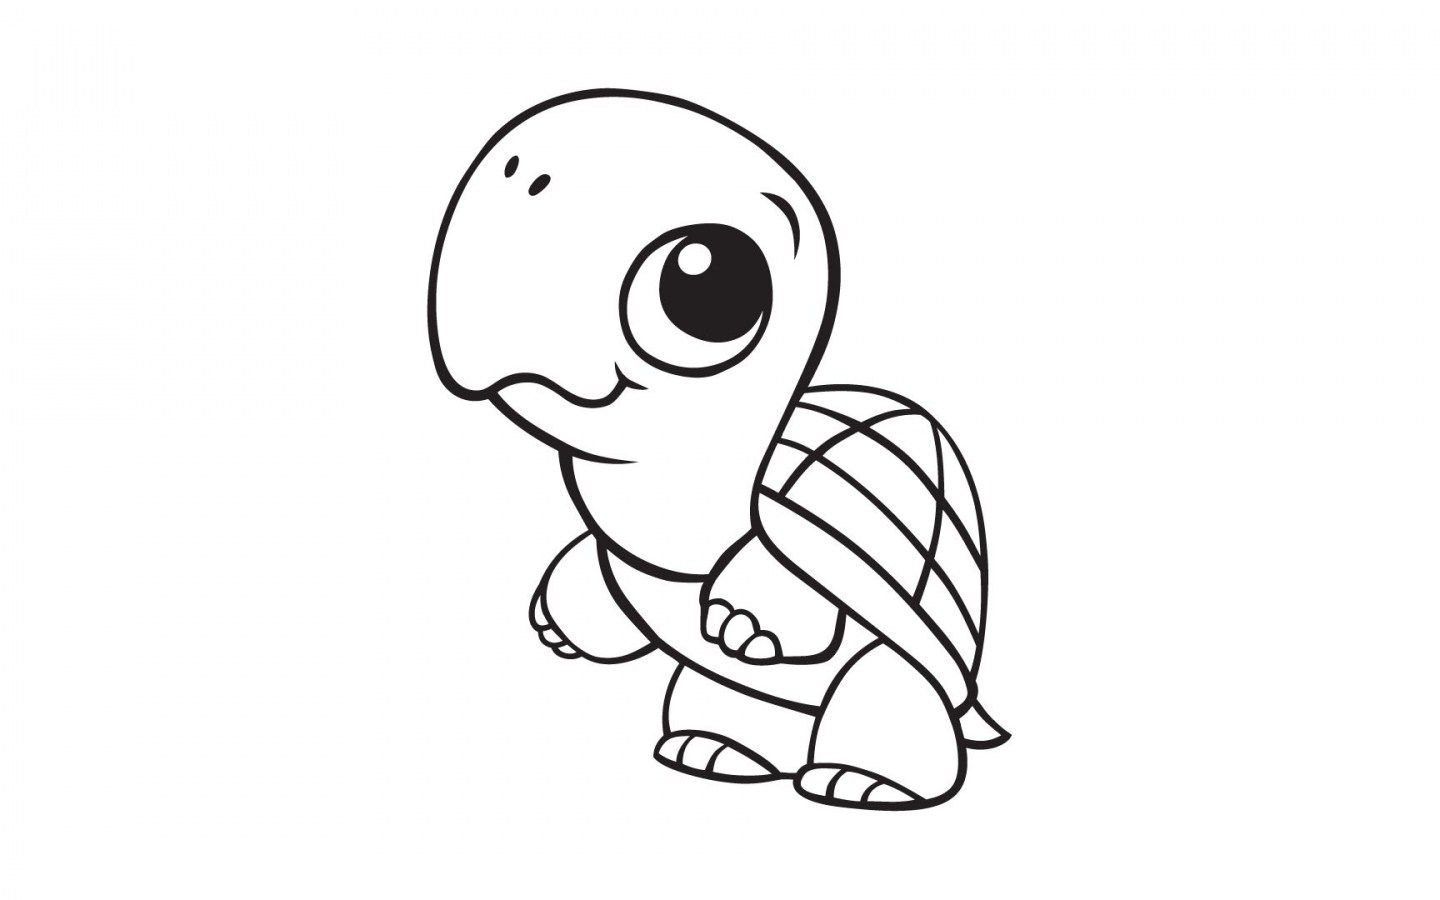 animal coloring pages you can download and print cute baby